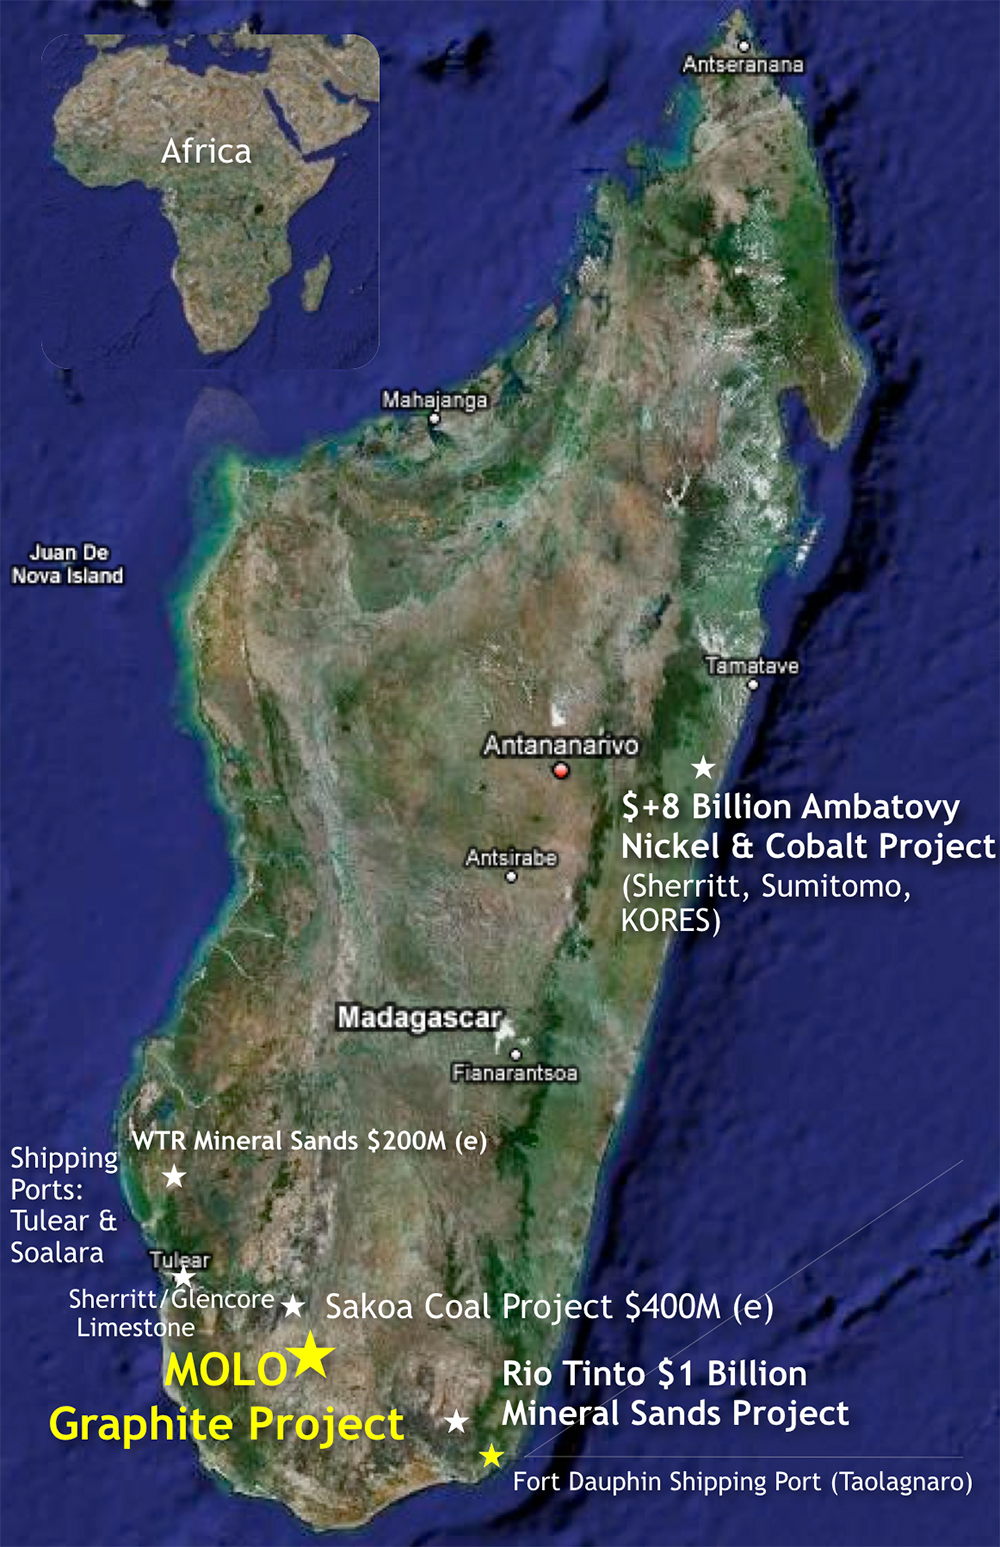 Location map of NextSource Materials' Molo graphite project in Madagascar. Credit: NextSource Materials.